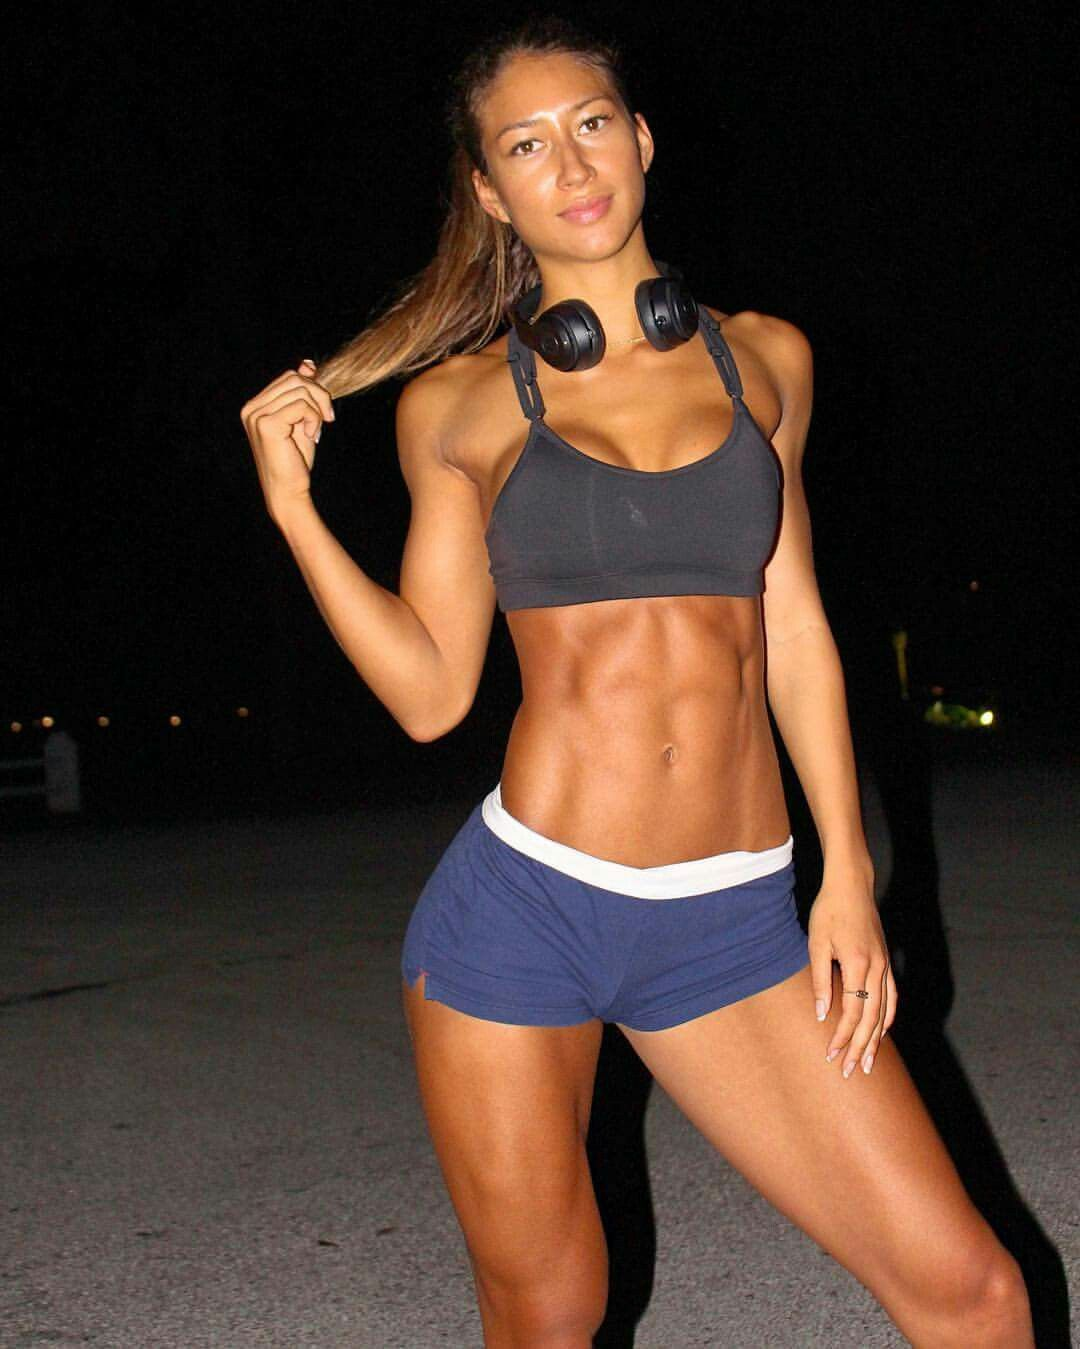 karina elle | hot fit women!!! | pinterest